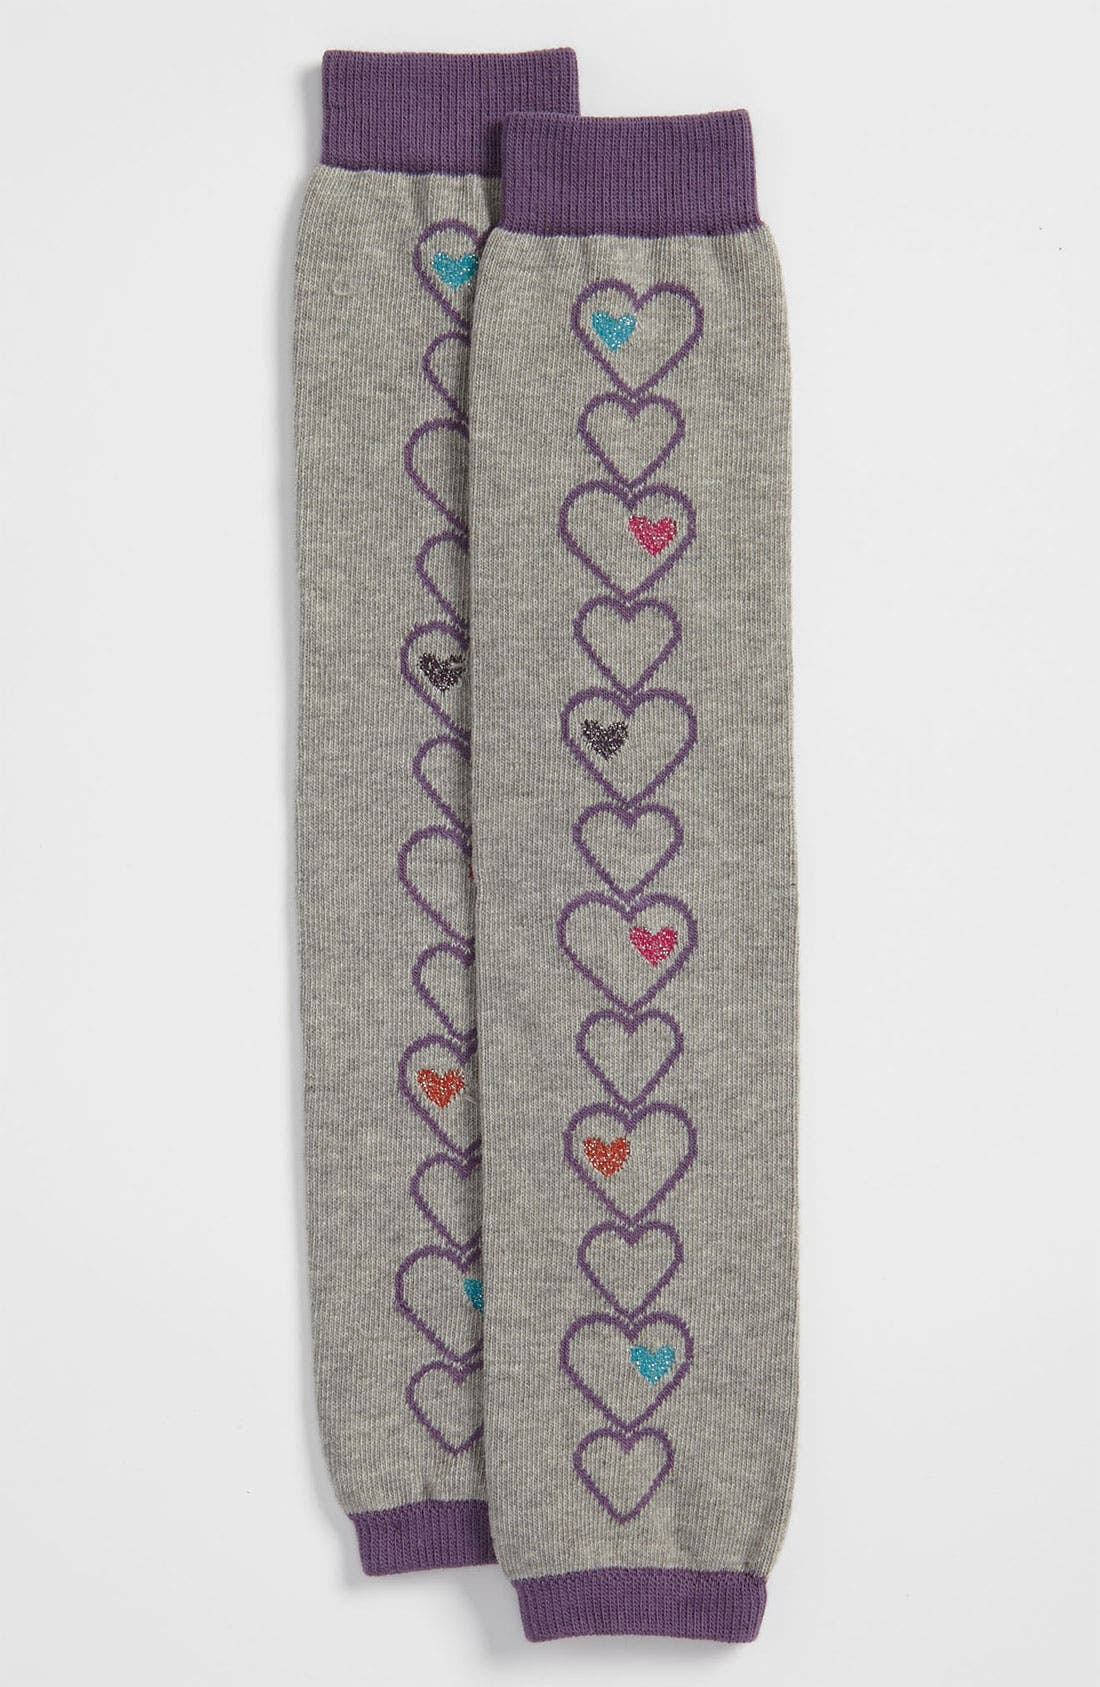 Alternate Image 1 Selected - Nordstrom 'Linear Hearts' Leg Warmers (Little Girls)